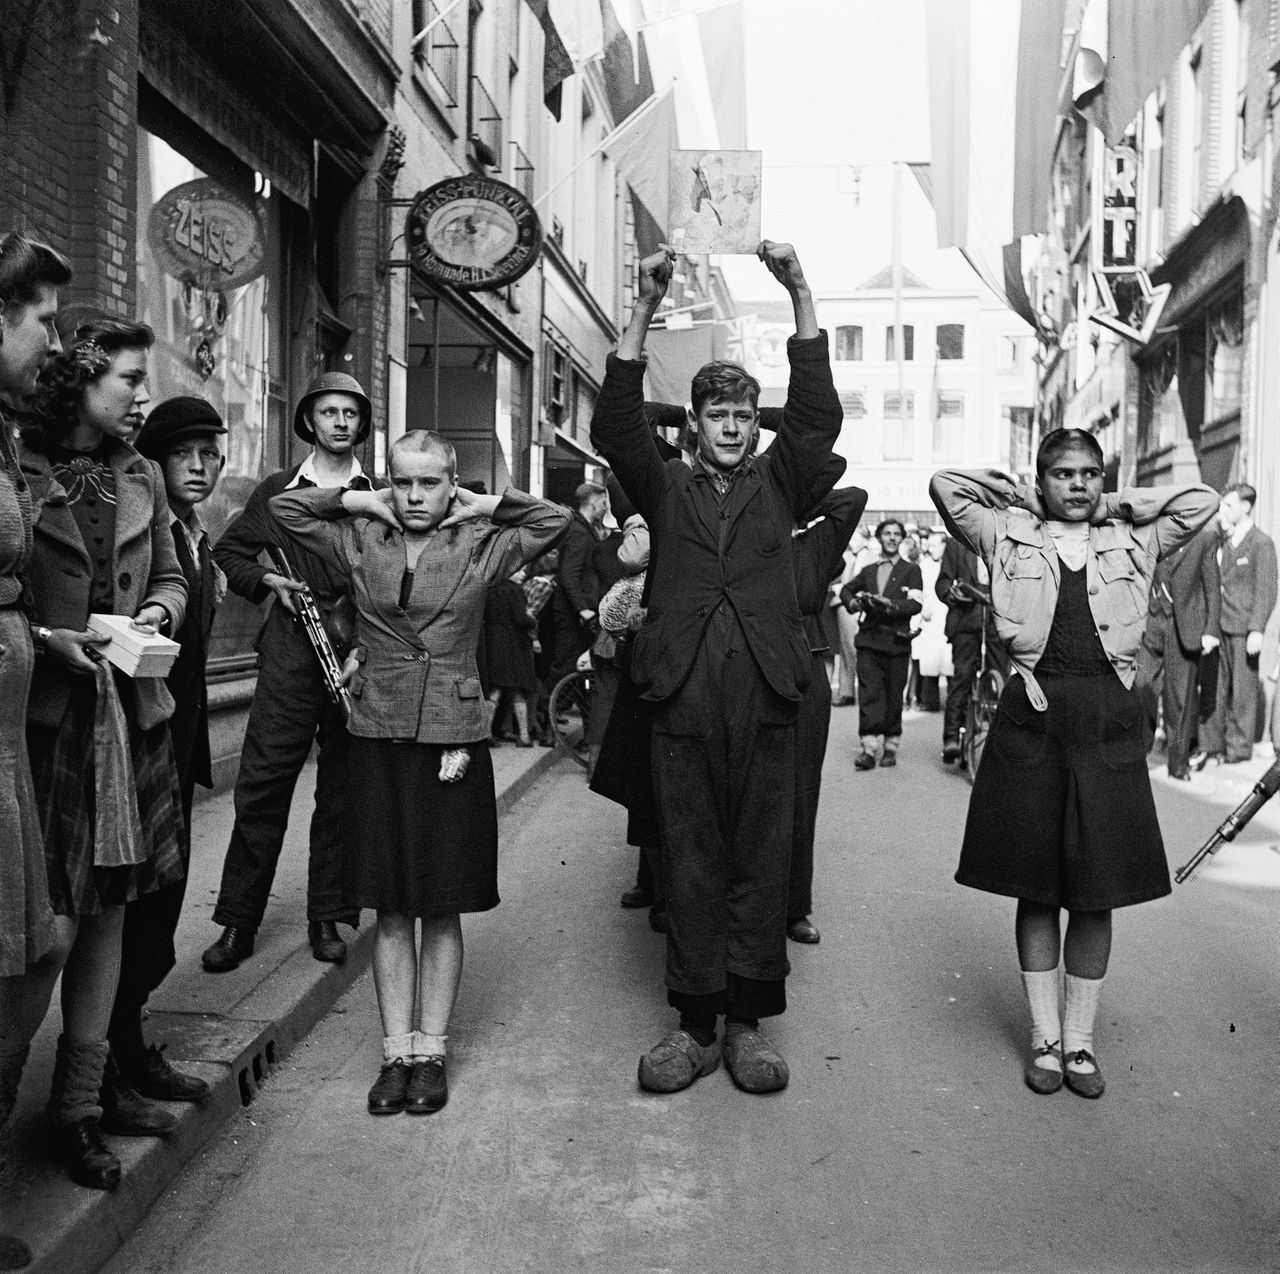 NSB'ers en kaalgeschoren 'moffenmeiden' op straat in Deventer, in april 1945.